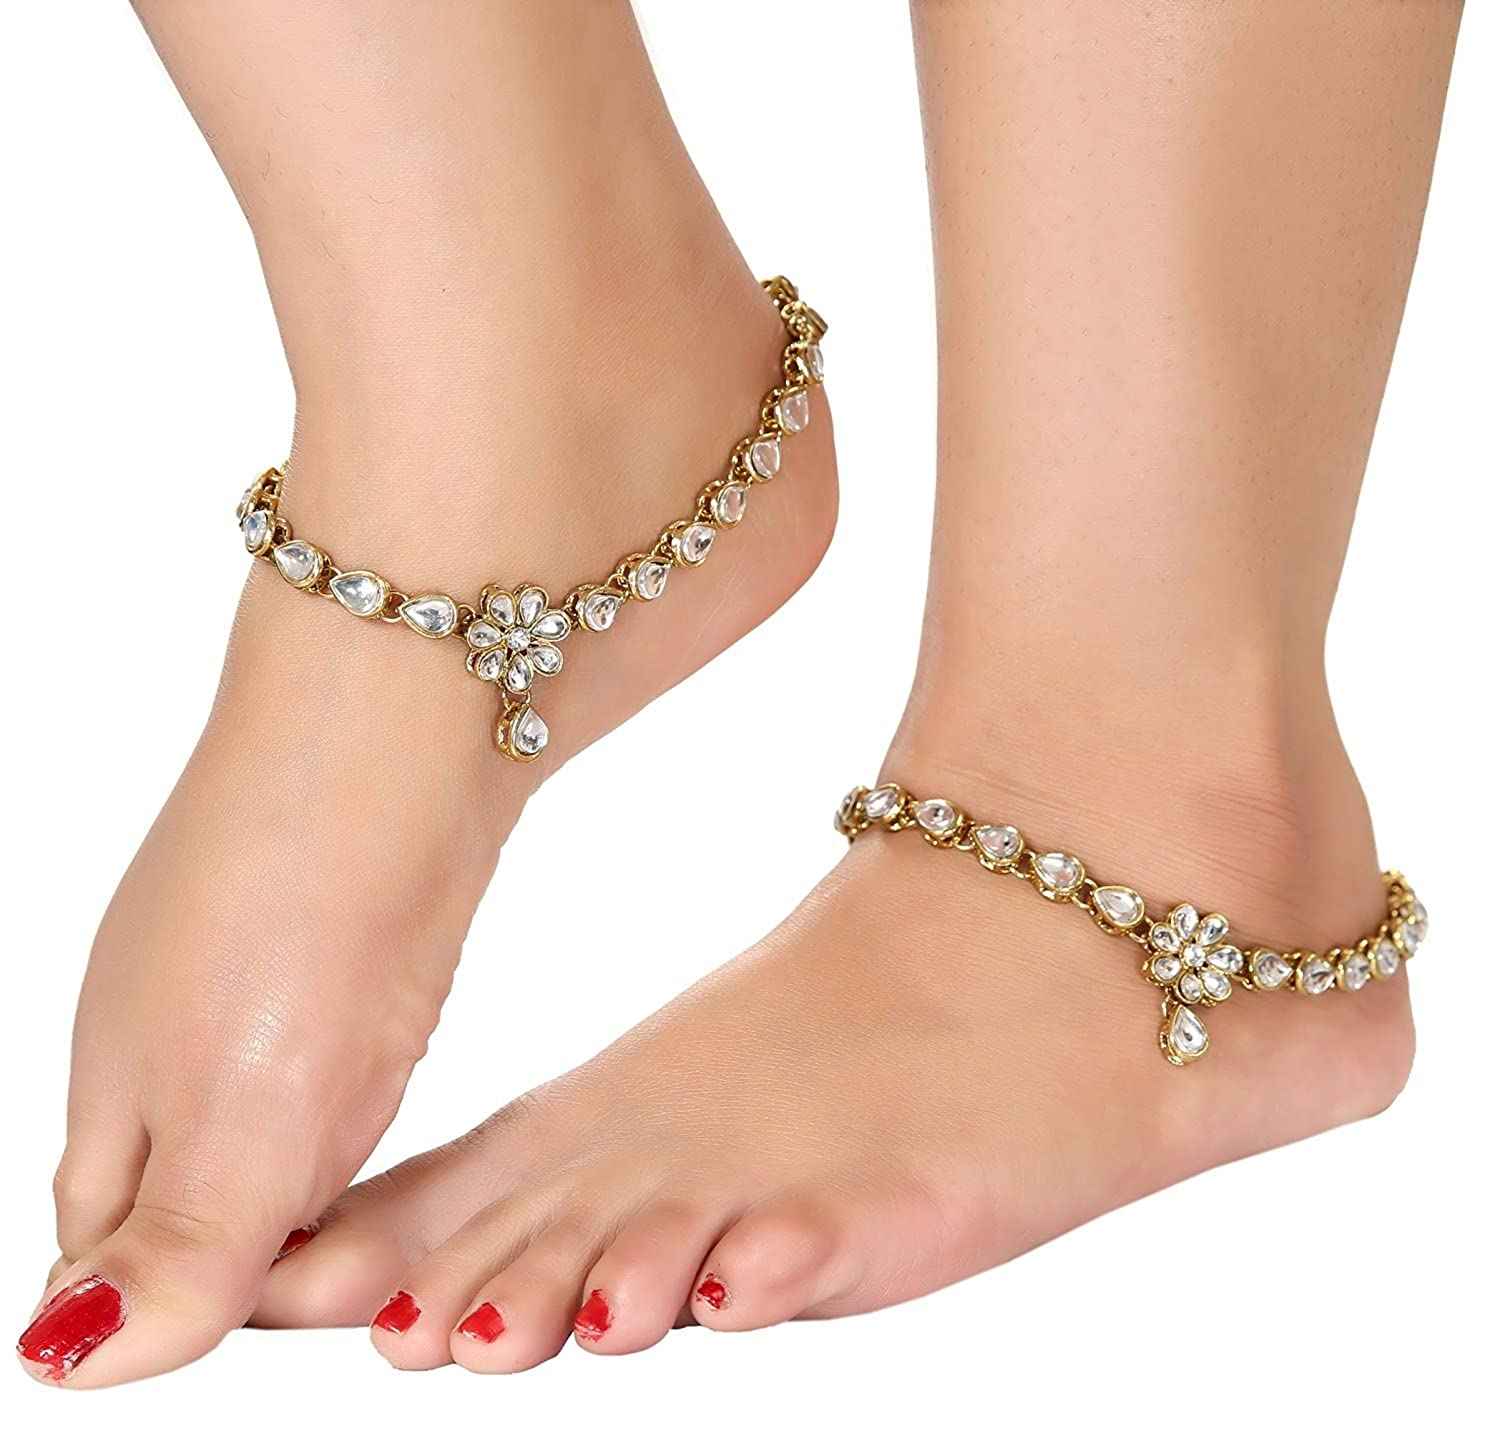 bracelets w aliexpress shipping jewelry on brand for multi fine coin get wholesale anklet ankle chains free zinc com trendy and women indian layers style buy alloy anklets